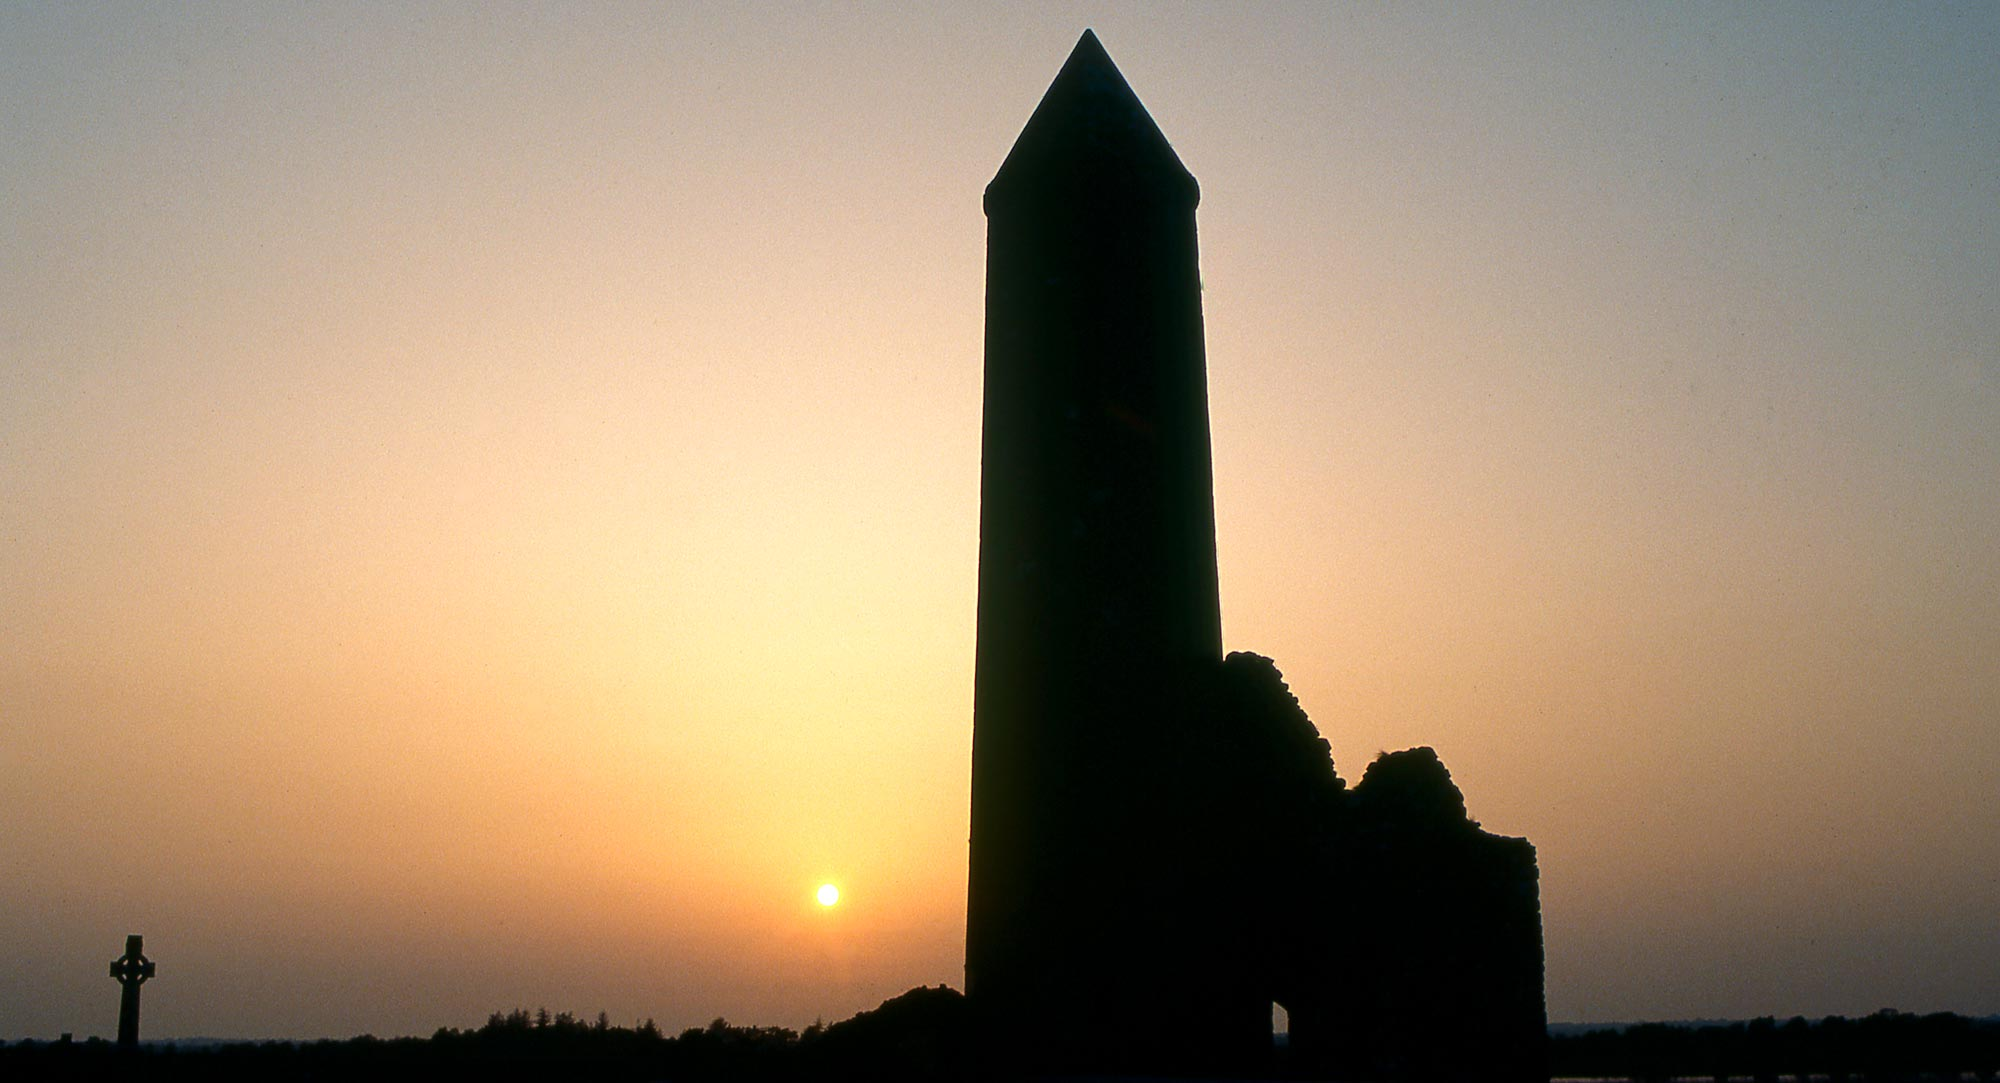 Silhouette of the round tower at Clonmacnoise